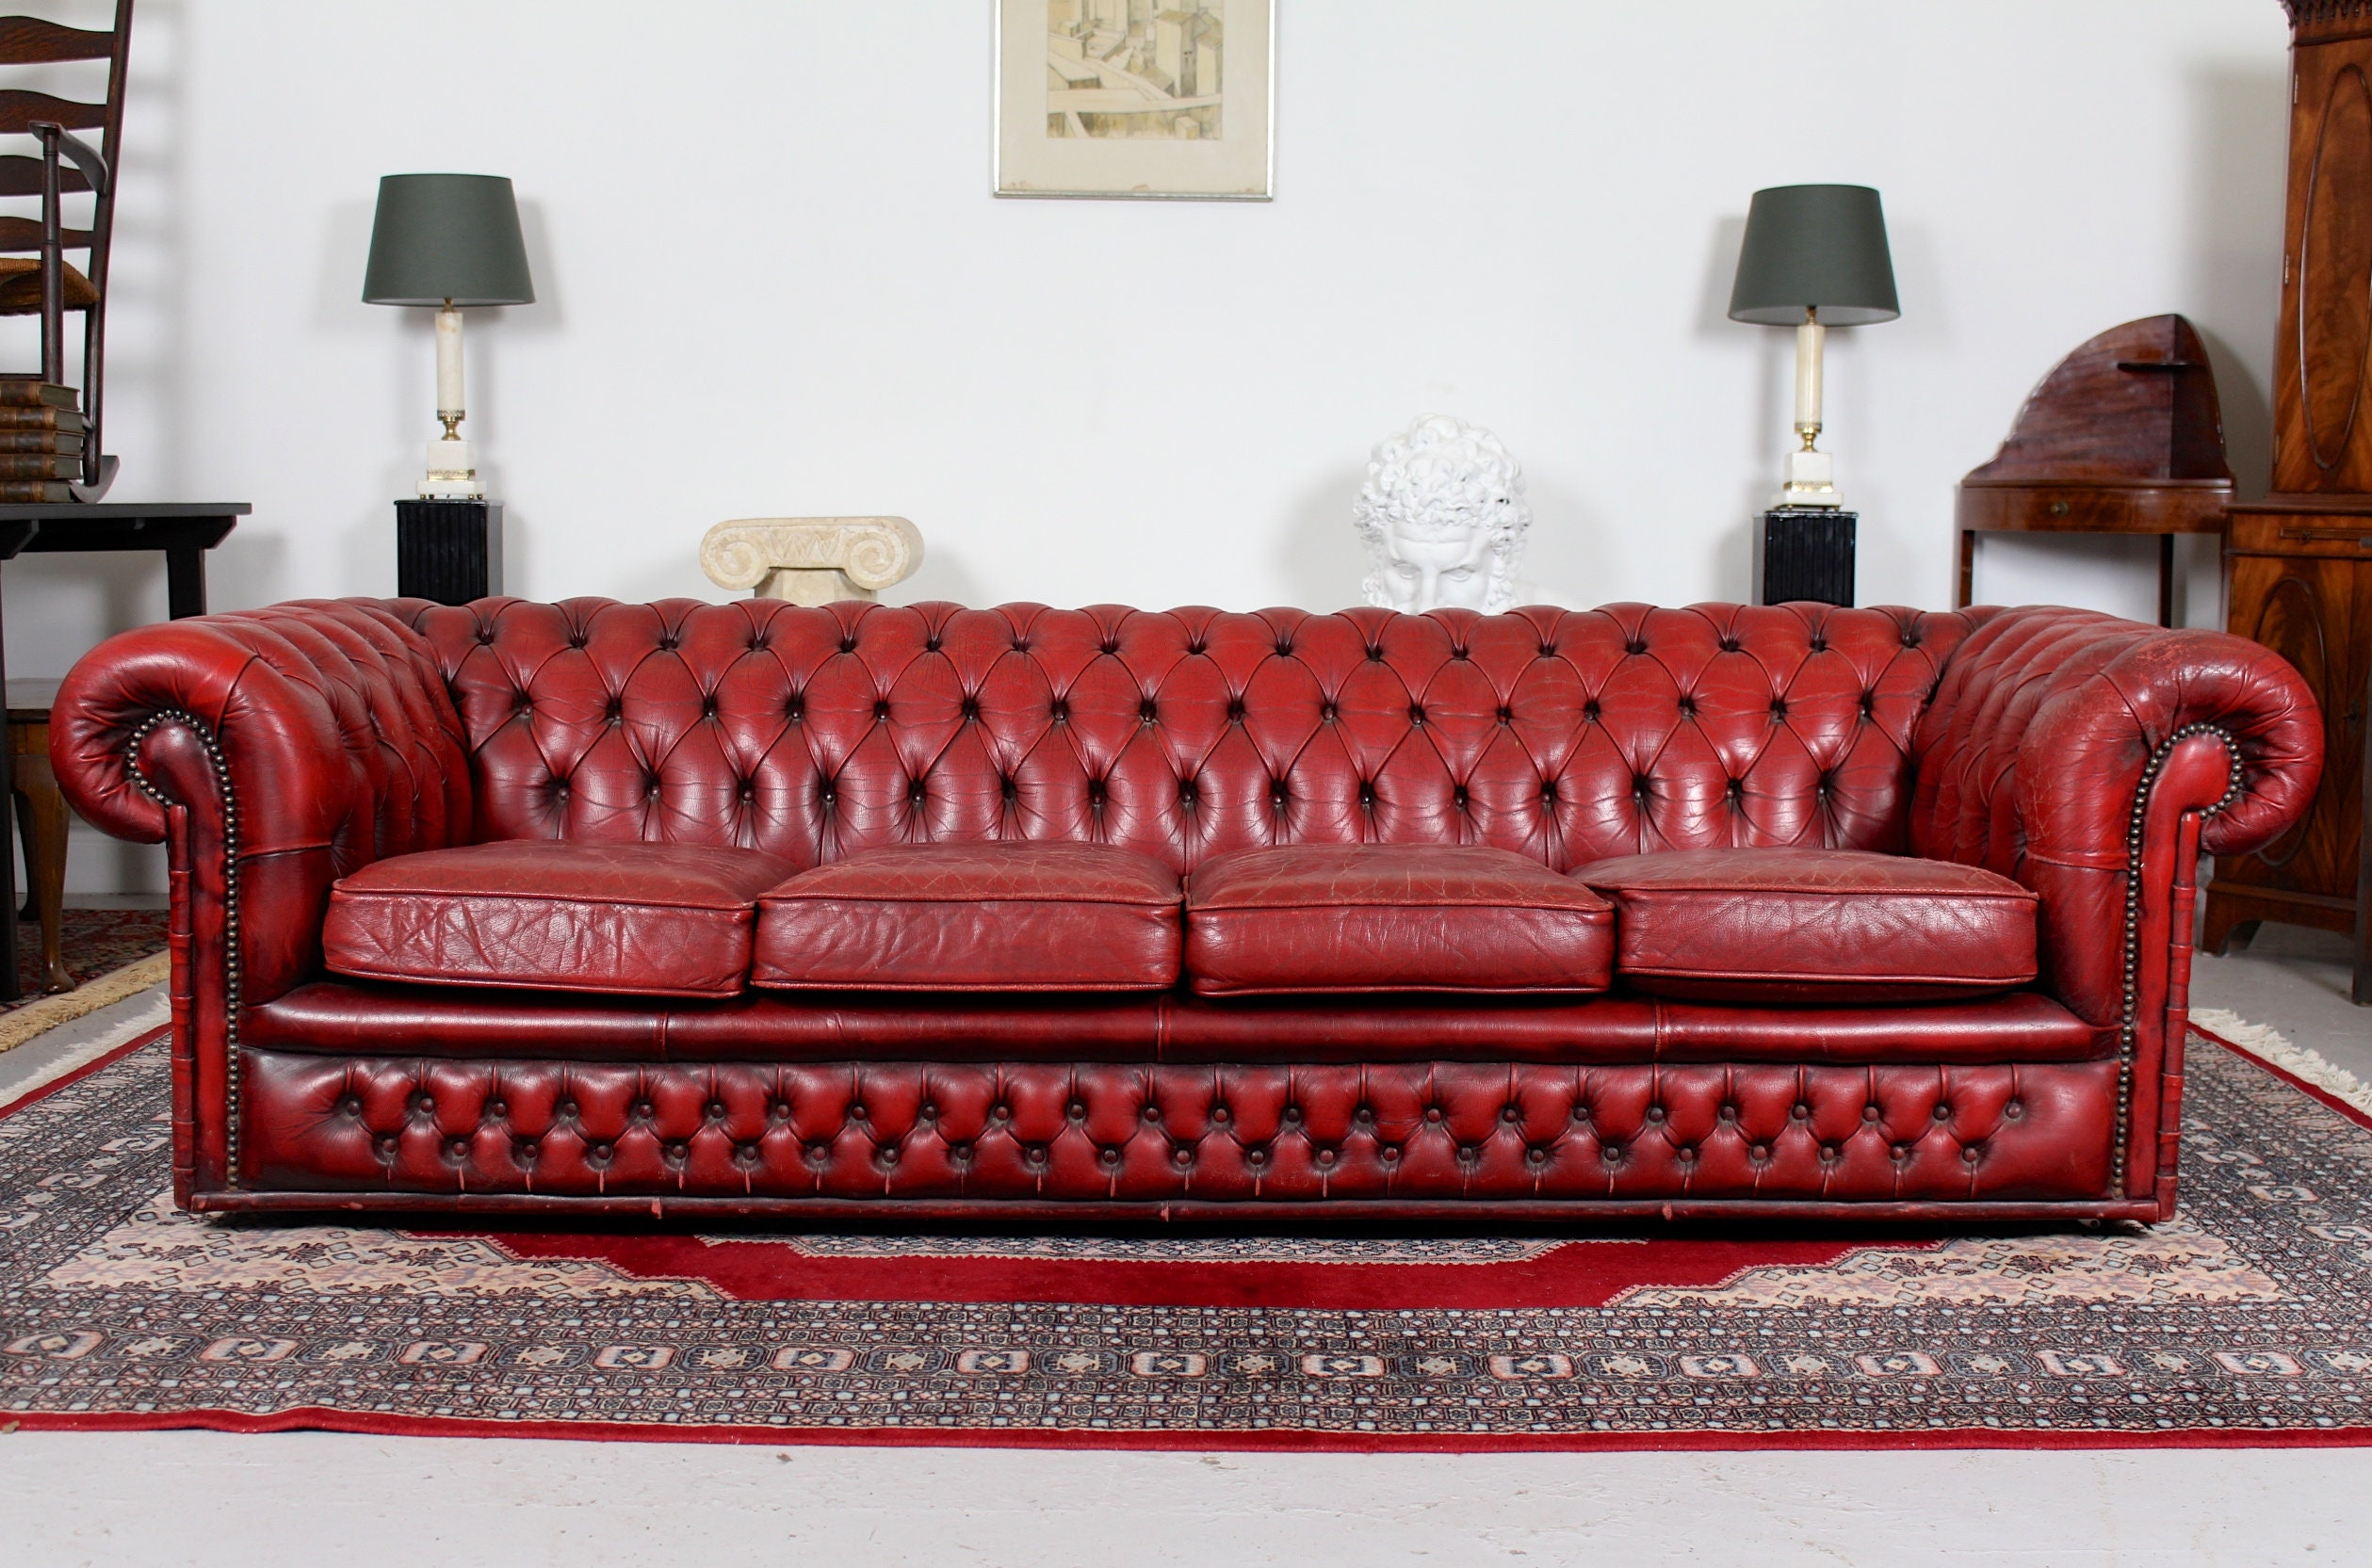 Large Chesterfied Sofa 4 Seater Red Leather Button Tufted Vintage